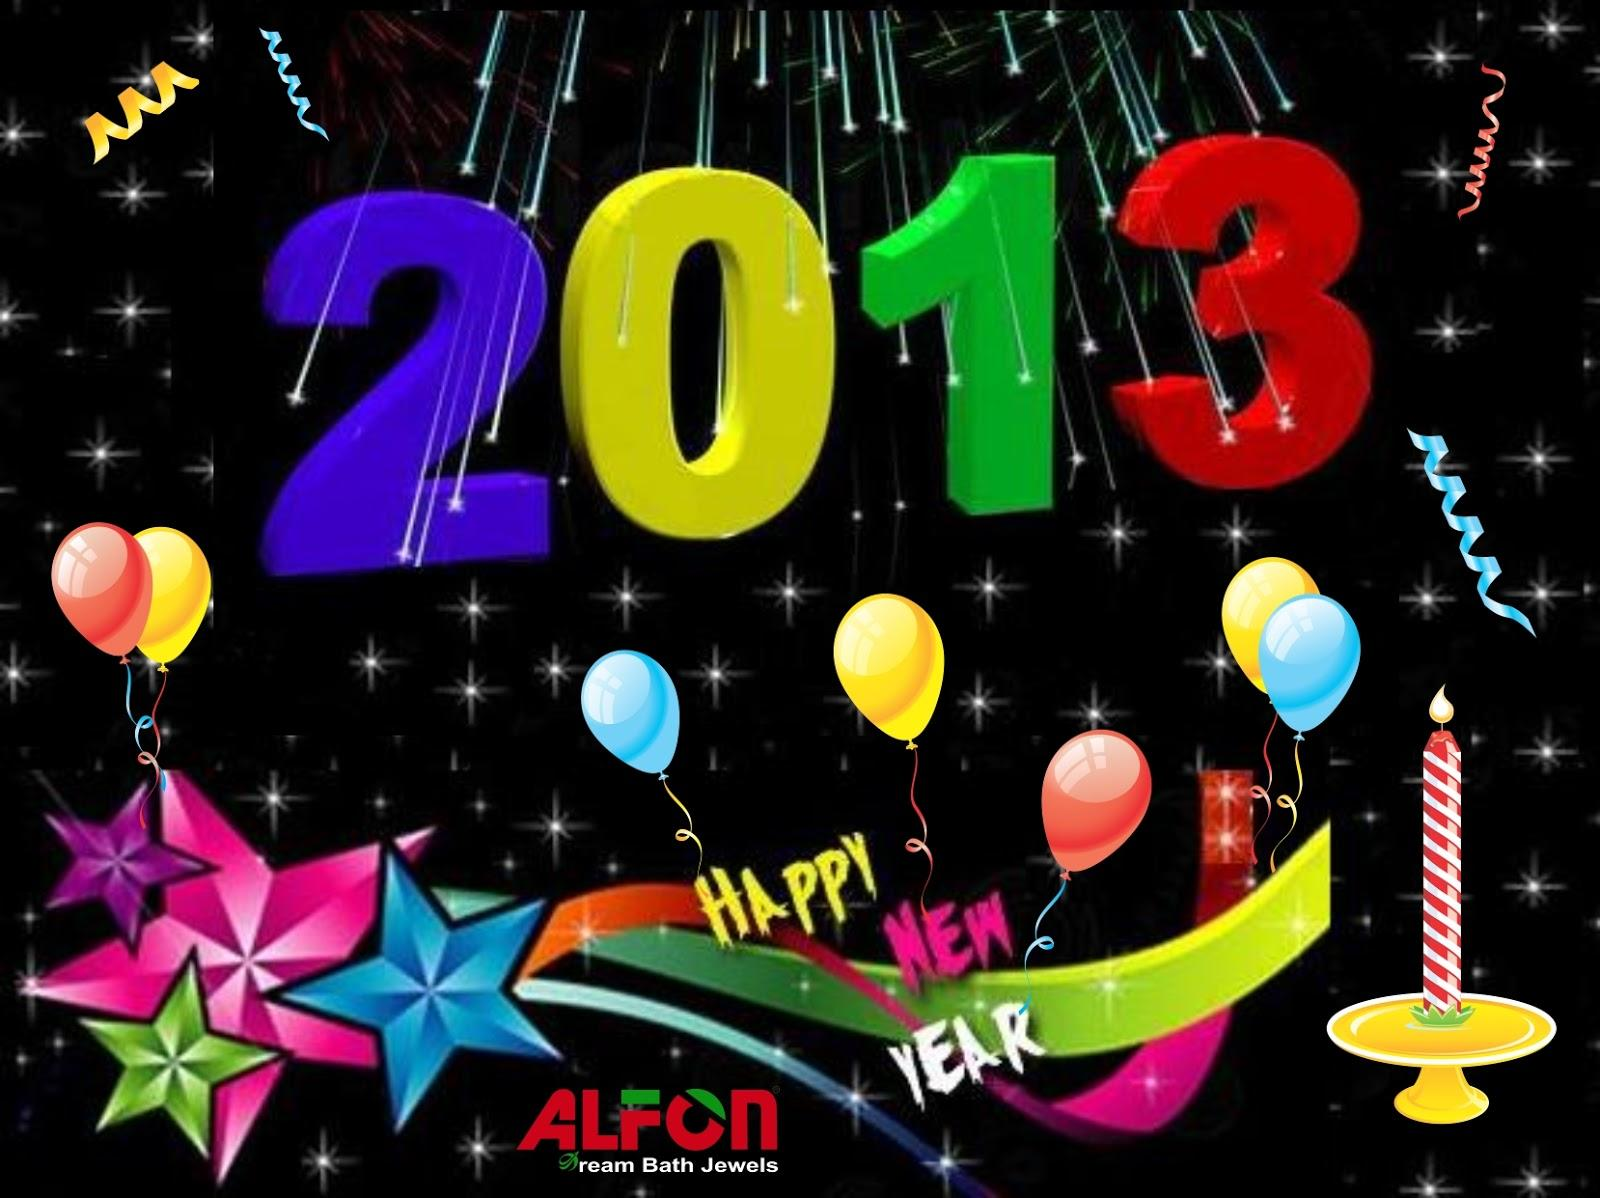 Happy-New-Year-2013-images (6)